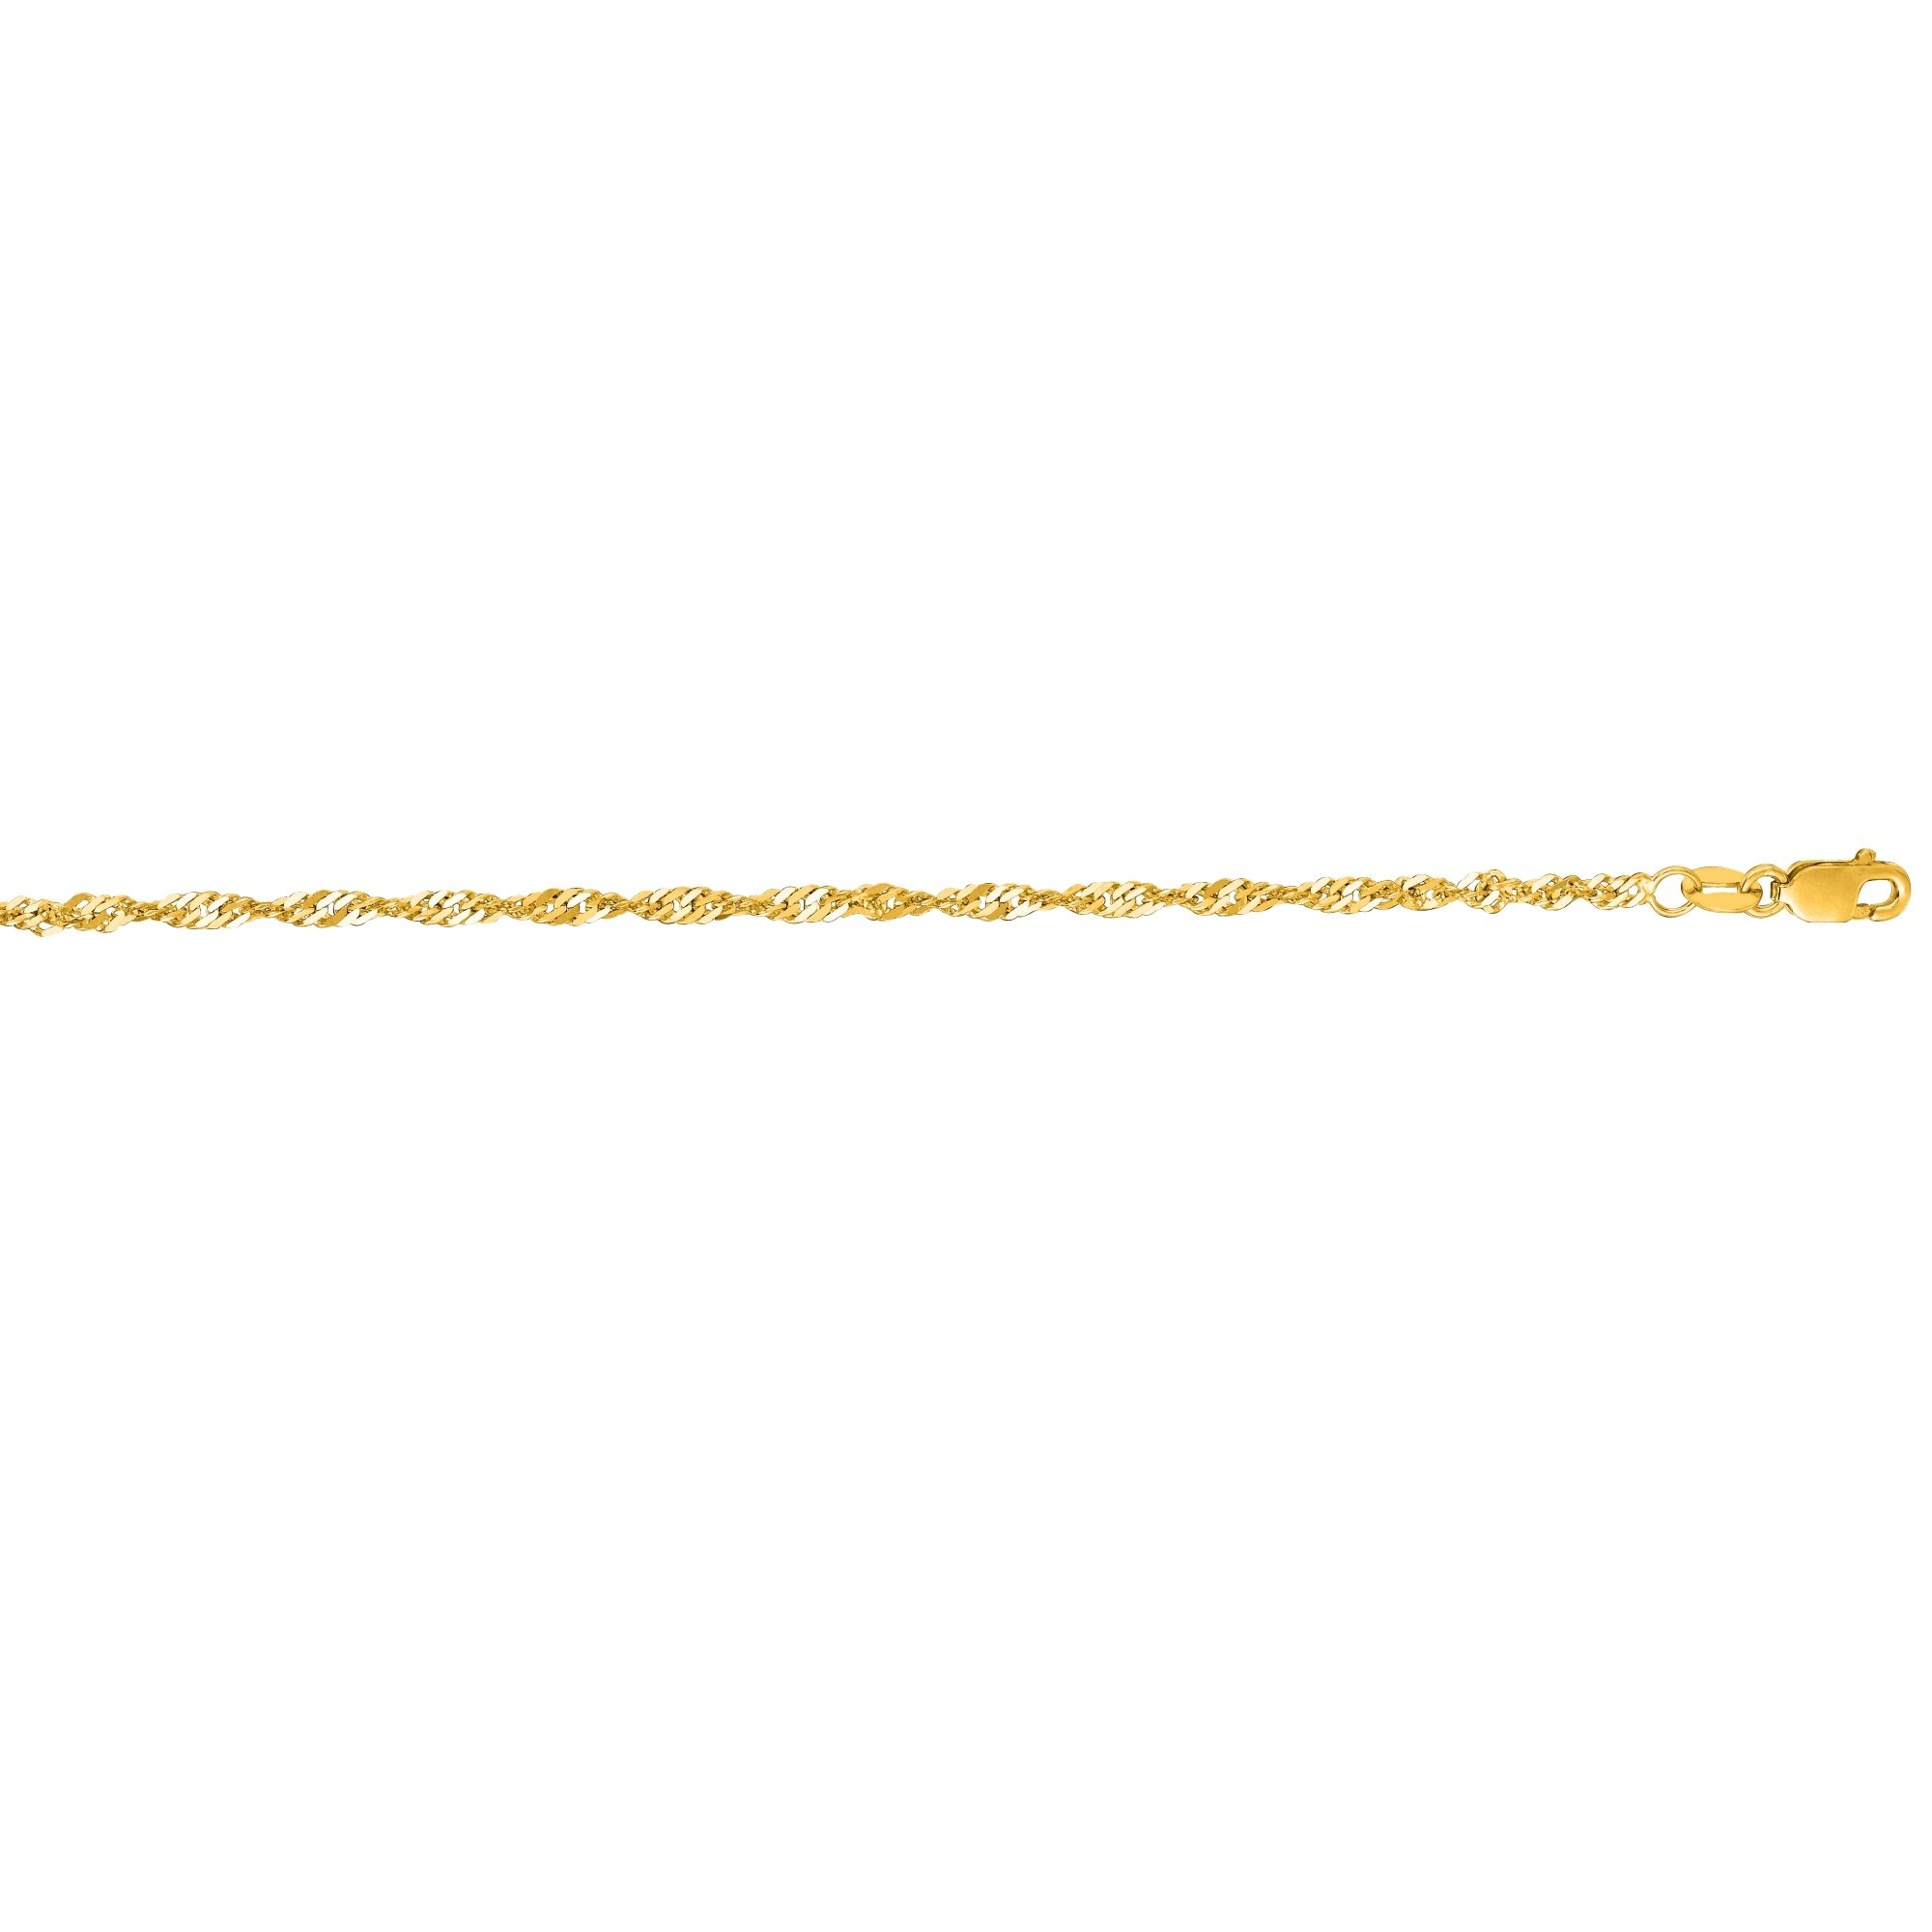 satyam ksvhs anklet anklets nx ankletspayal antique jewellery beautiful gold women plated karat